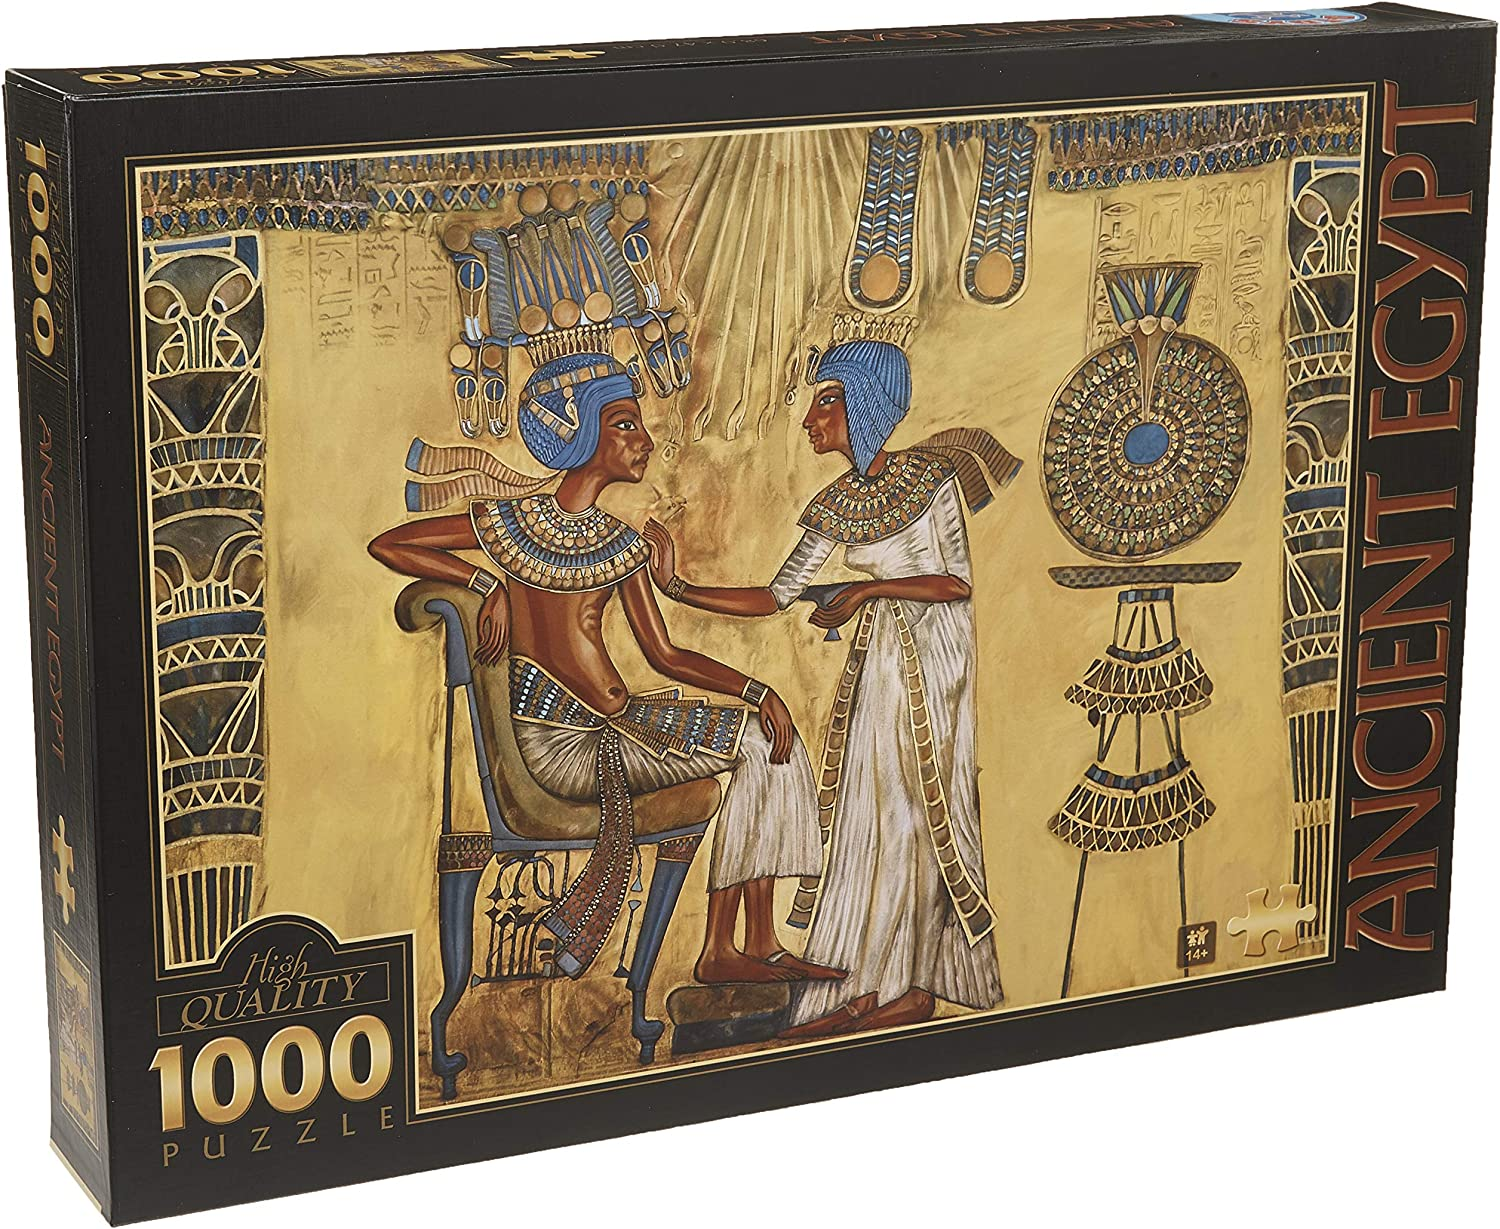 D-Toys Around the World - Egyptian Art Jigsaw Puzzle, 1000-Piece by D-Toys